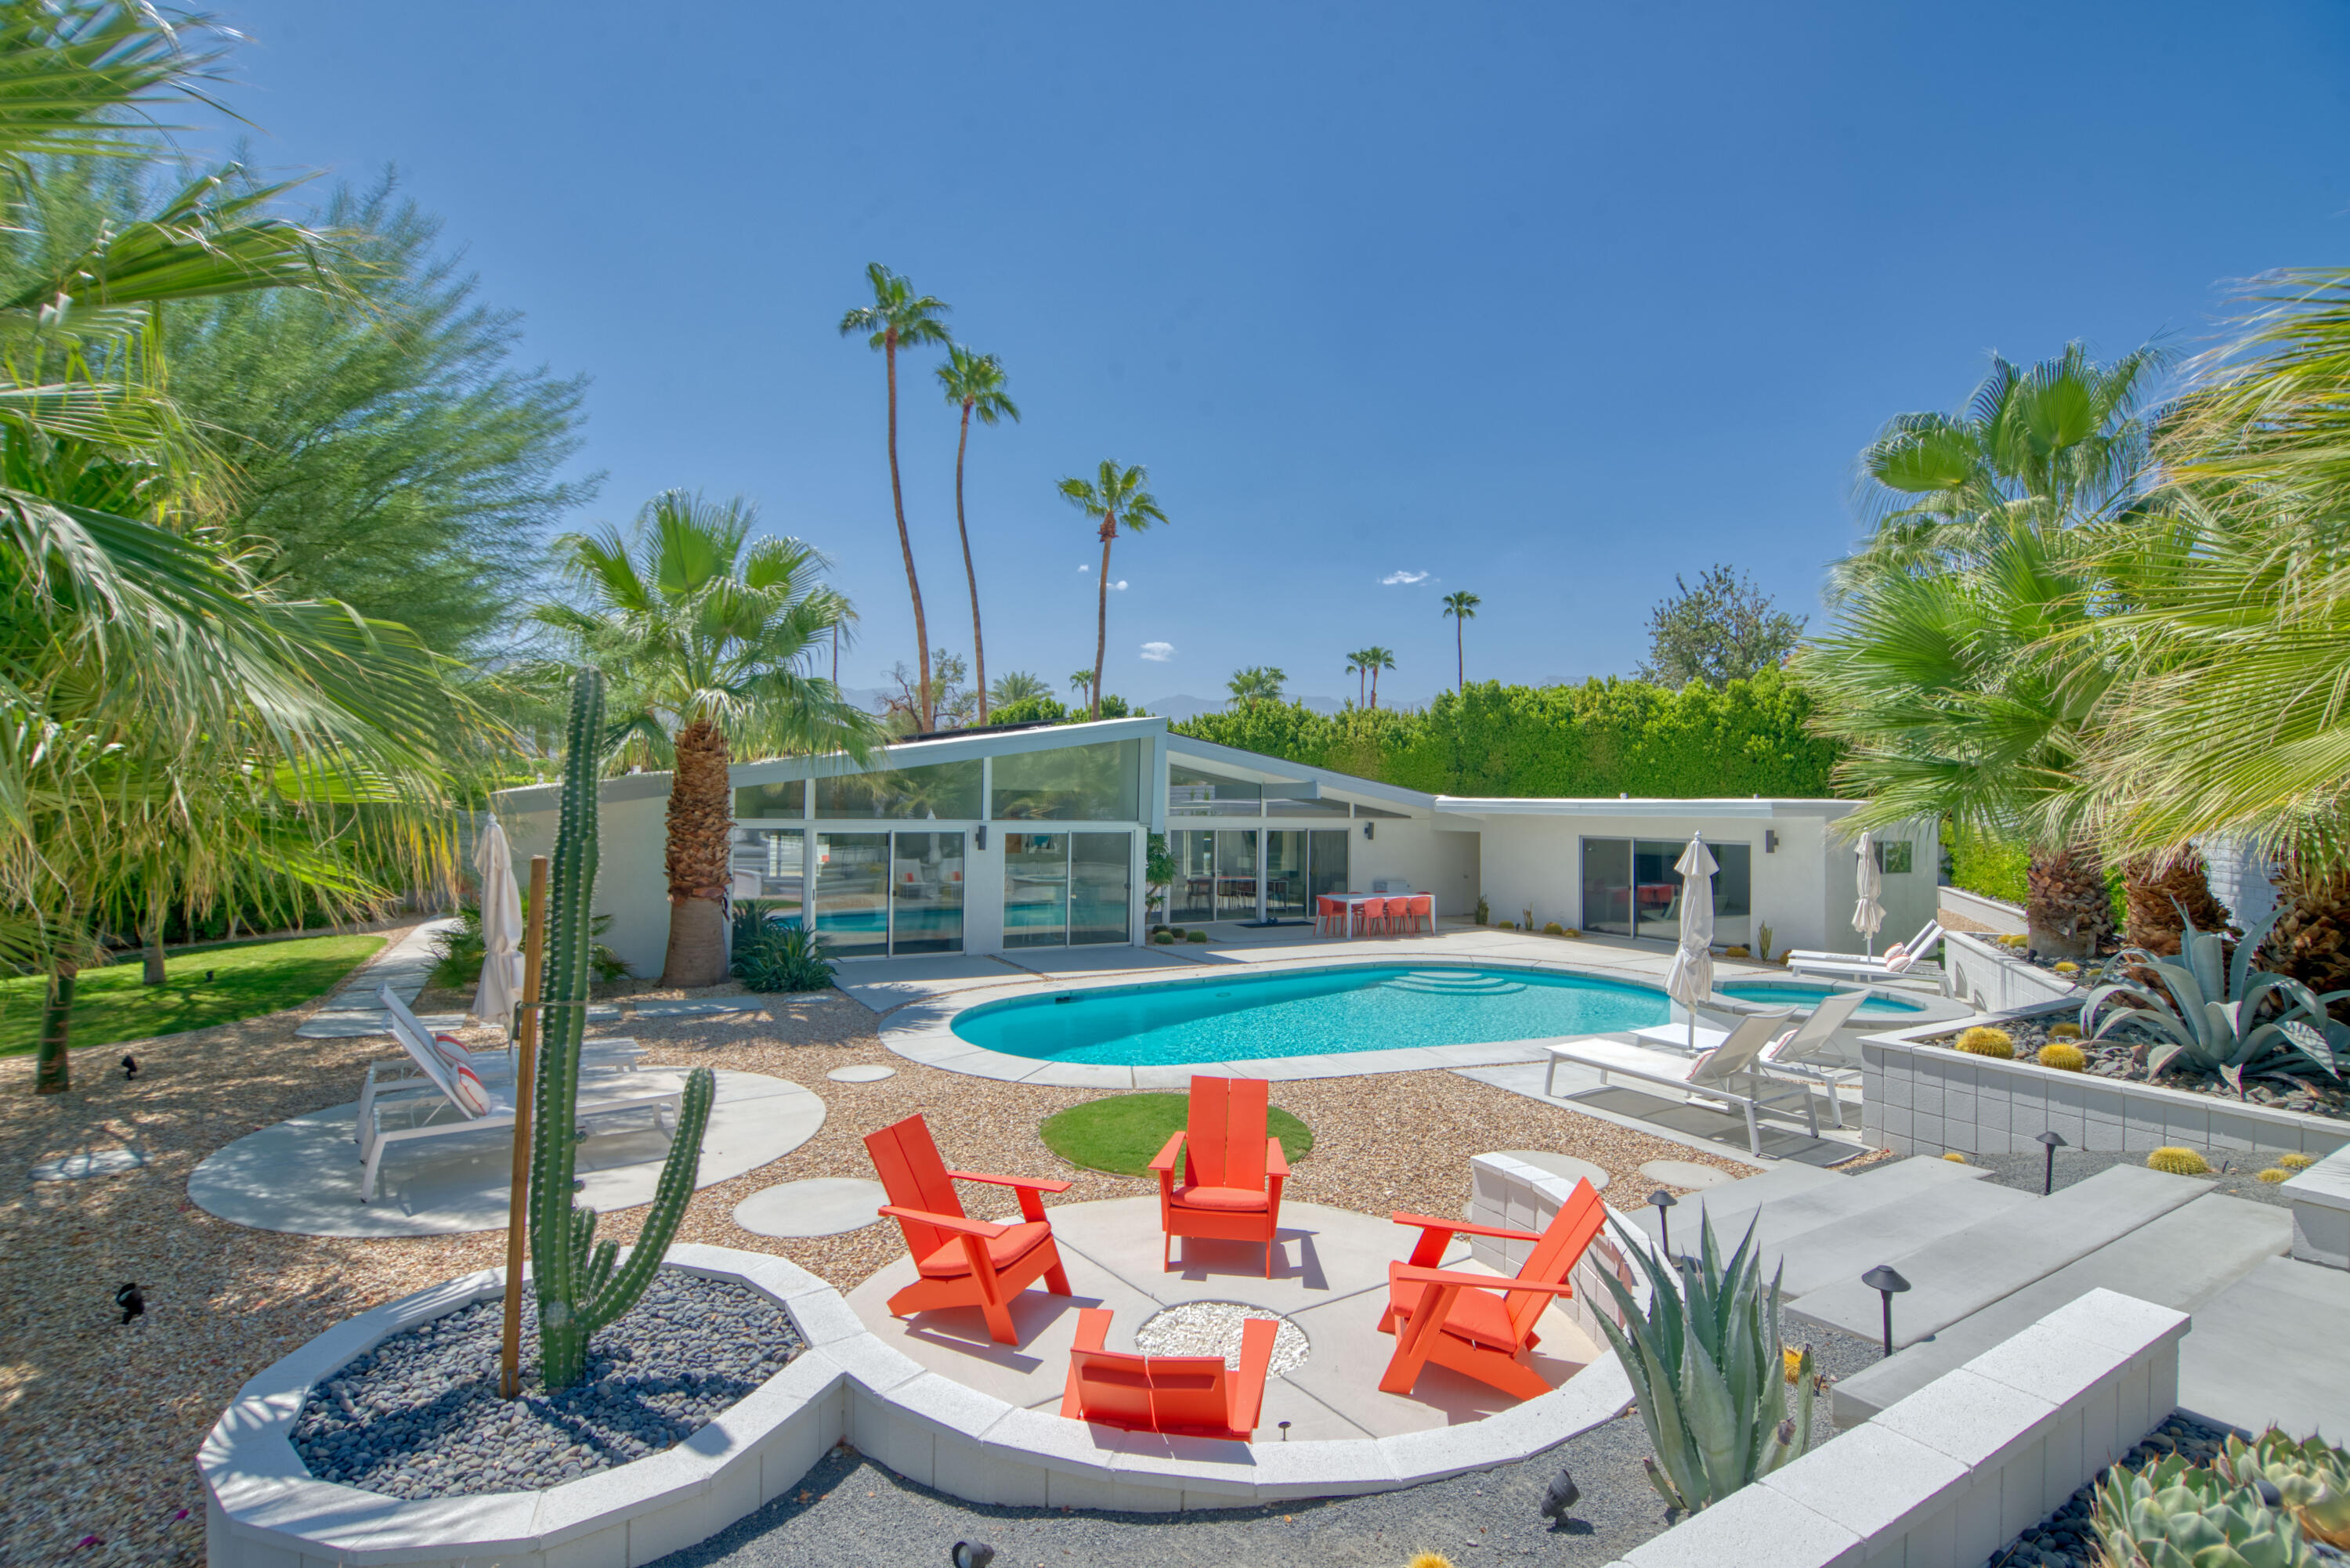 Attention MID-CENTURY MODERN enthusiasts!  Check out this renovated and beautifully-appointed 4 bed, 3 bath architectural gem located on a premier lot within blocks of Tamarisk Country Club.  Originally designed by architects Palmer & Krisel, this very special property is being sold and delivered turnkey furnished - including paid for solar panels and a Tesla Powerwall.  As an added bonus, this home has received The Mills Act designation rewarding you with a lower tax base!  You will love how the stylish kitchen with adjacent dining area opens to the light and bright great room that features a vaulted wood beam ceiling with clerestory windows, mountain views to the south and dual sliding glass doors that open to the ultra-private resort-style backyard that includes a refreshing pool, in-ground spa, gas firepit, and elevated deck.  Mature palms and mountain views frame the backdrop of this tropy property!  Master Suite features a high ceiling with clerestory windows, a sliding glass door that opens to the private backyard and an ultra-modern bath with dual sinks and a large walk-in shower with two showerheads.  Bedrooms Two and Three also offer high ceilings, views, a sliding glass door that opens to the outside and easy access to the hallway bathroom complete with a walk-in shower.  Outside is a large guest house (Bedroom Four) which includes a wet bar and another spa-like full bath.  Absolutely incredible!